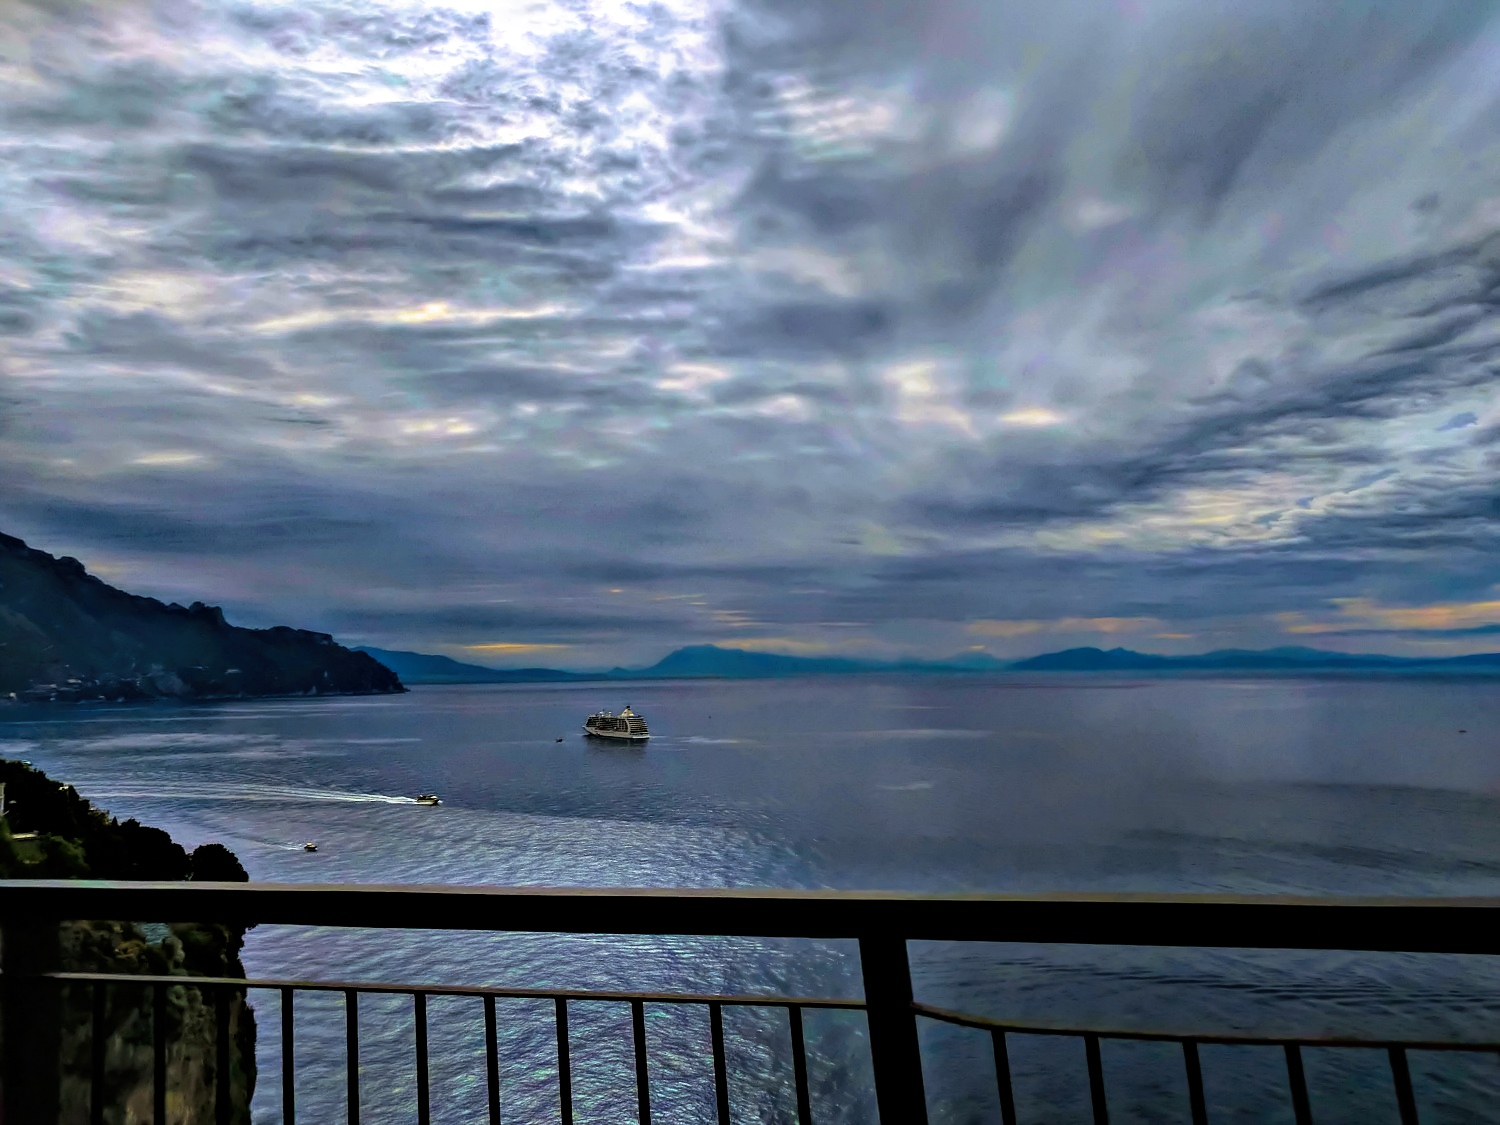 An early morning drive along the Amalfi Coast with a ship in a distance view.